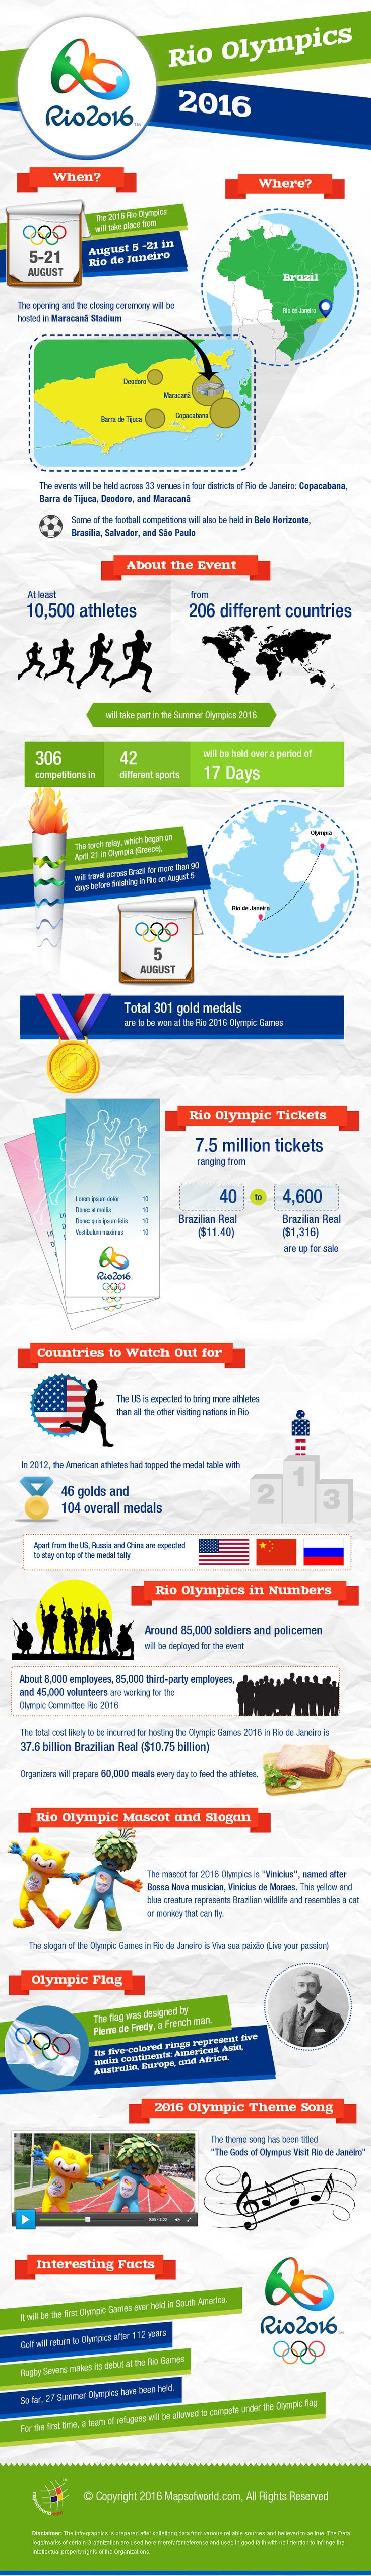 Rio 2016 Olympics Infographic                                                                                                                                                      More